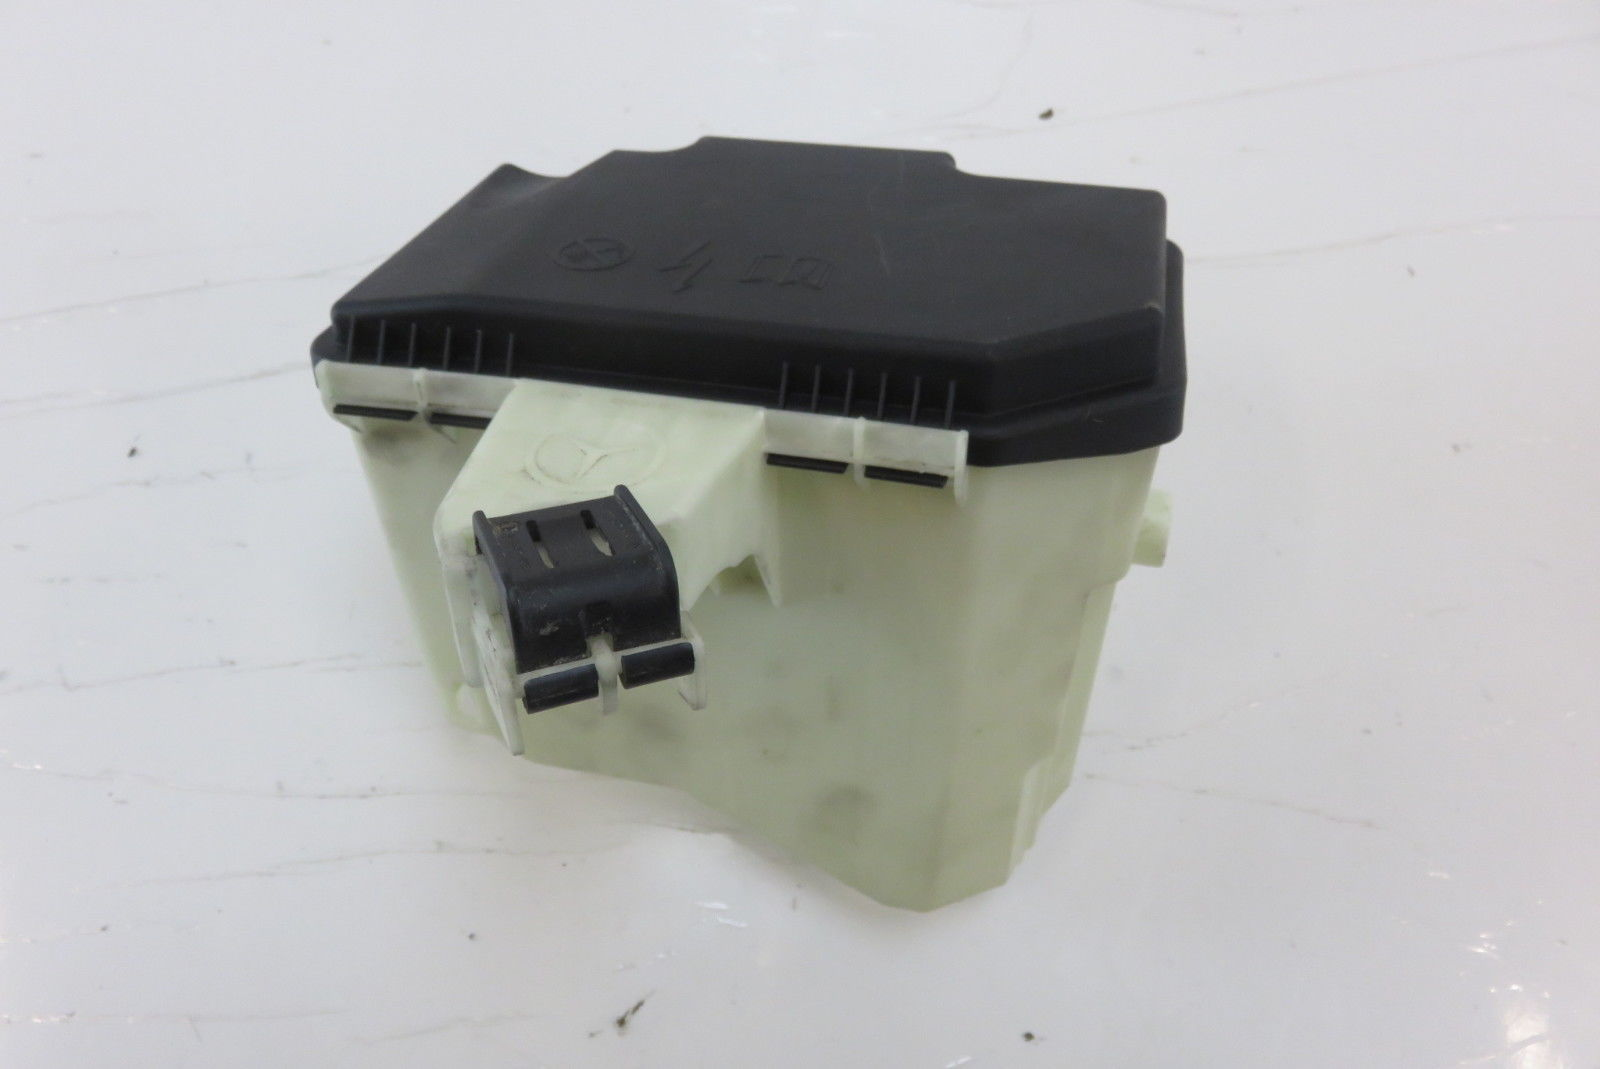 ... Mercedes W222 S550 fuse box housing w/cover 2225400024 2225400082